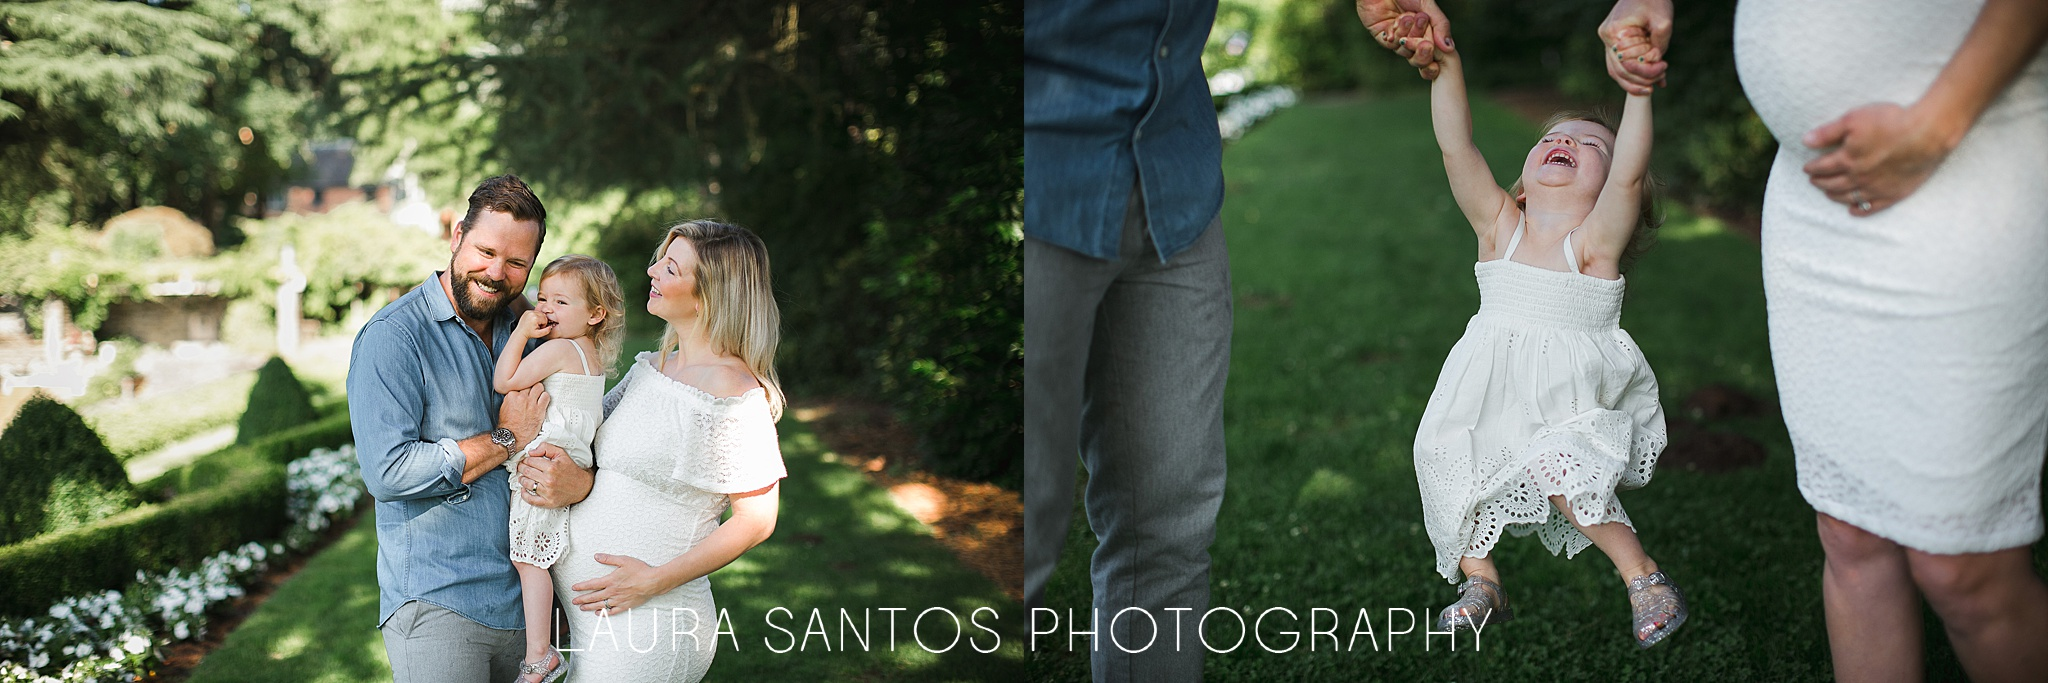 Laura Santos Photography Portland Oregon Family Photographer_1083.jpg